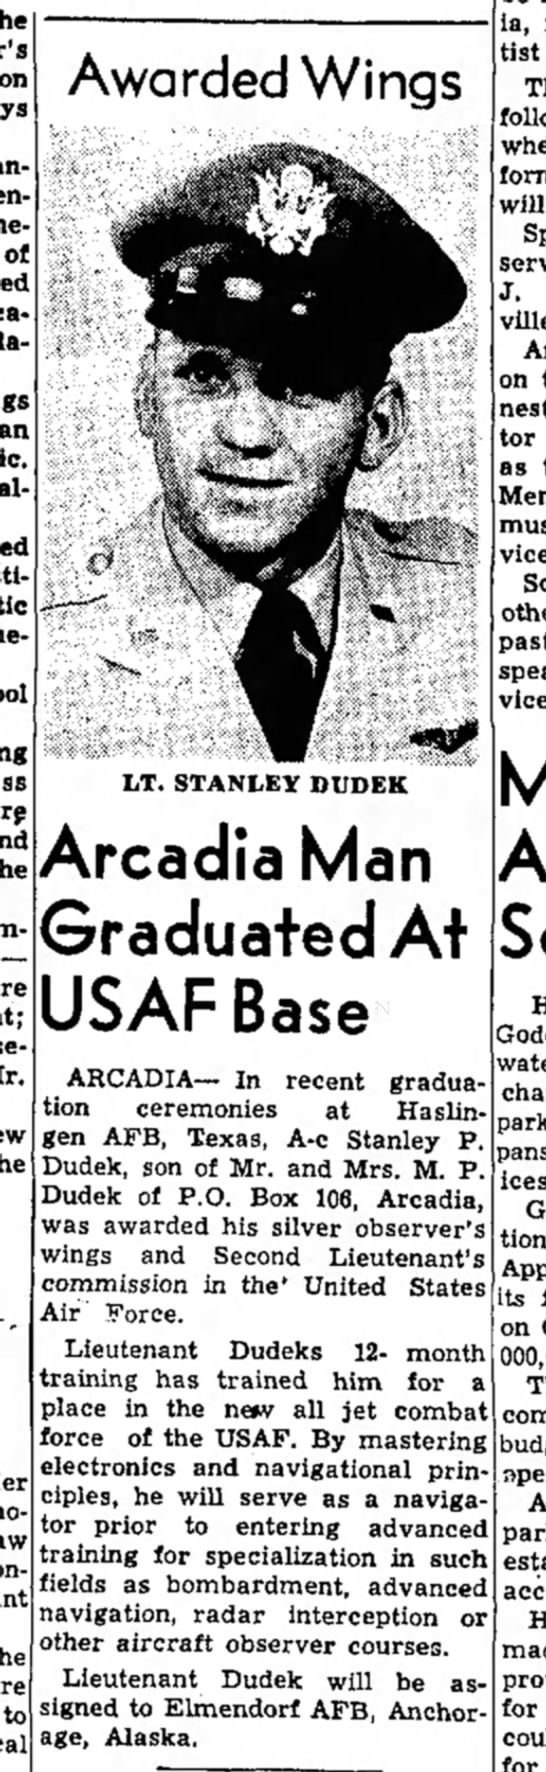 Wednesday, June 1, 1955 -